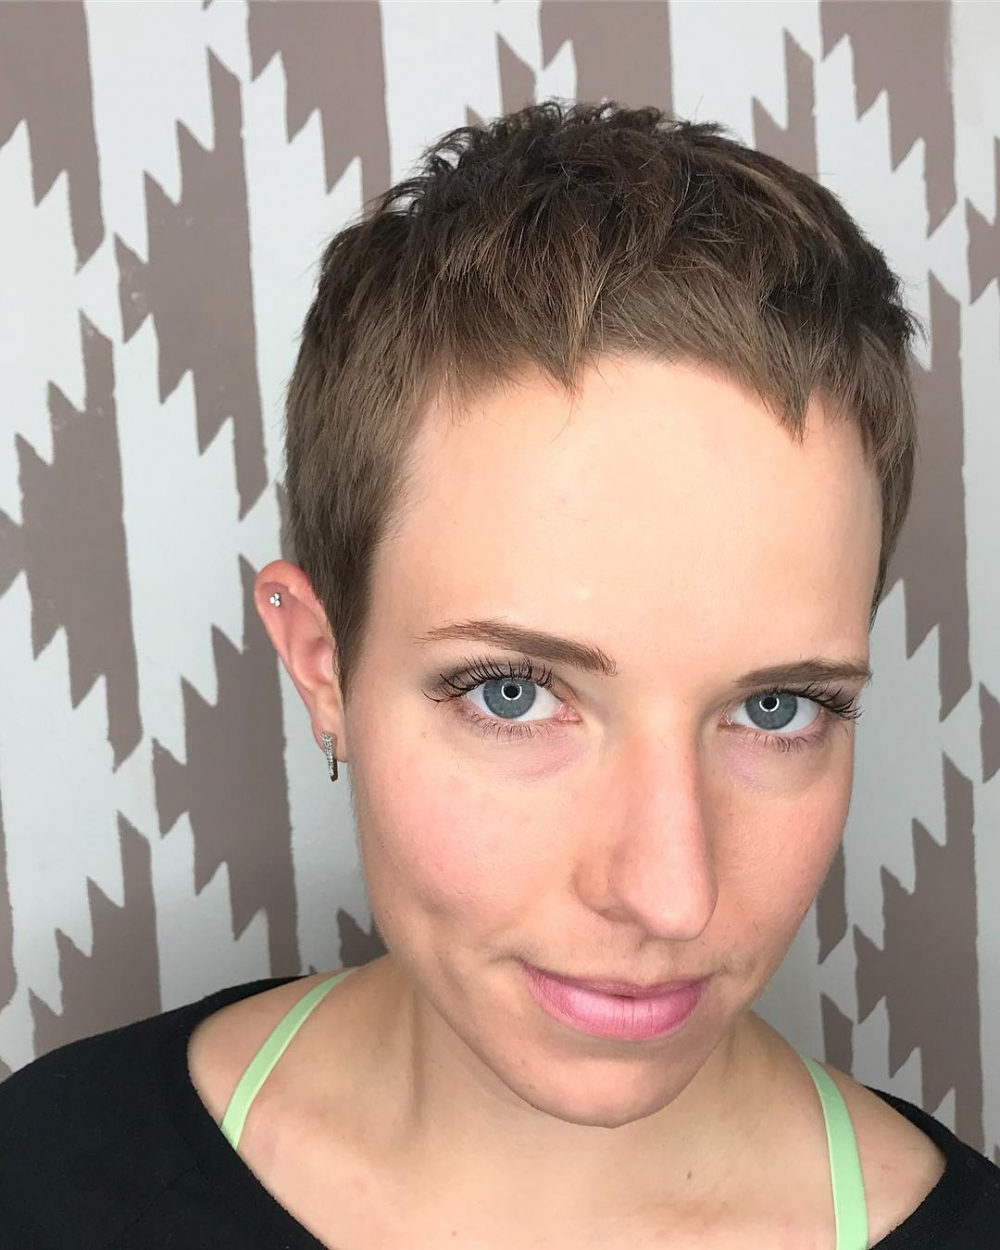 27 Very Short Haircuts You Have To See In 2018 Within Super Short Haircuts For Girls (View 3 of 25)